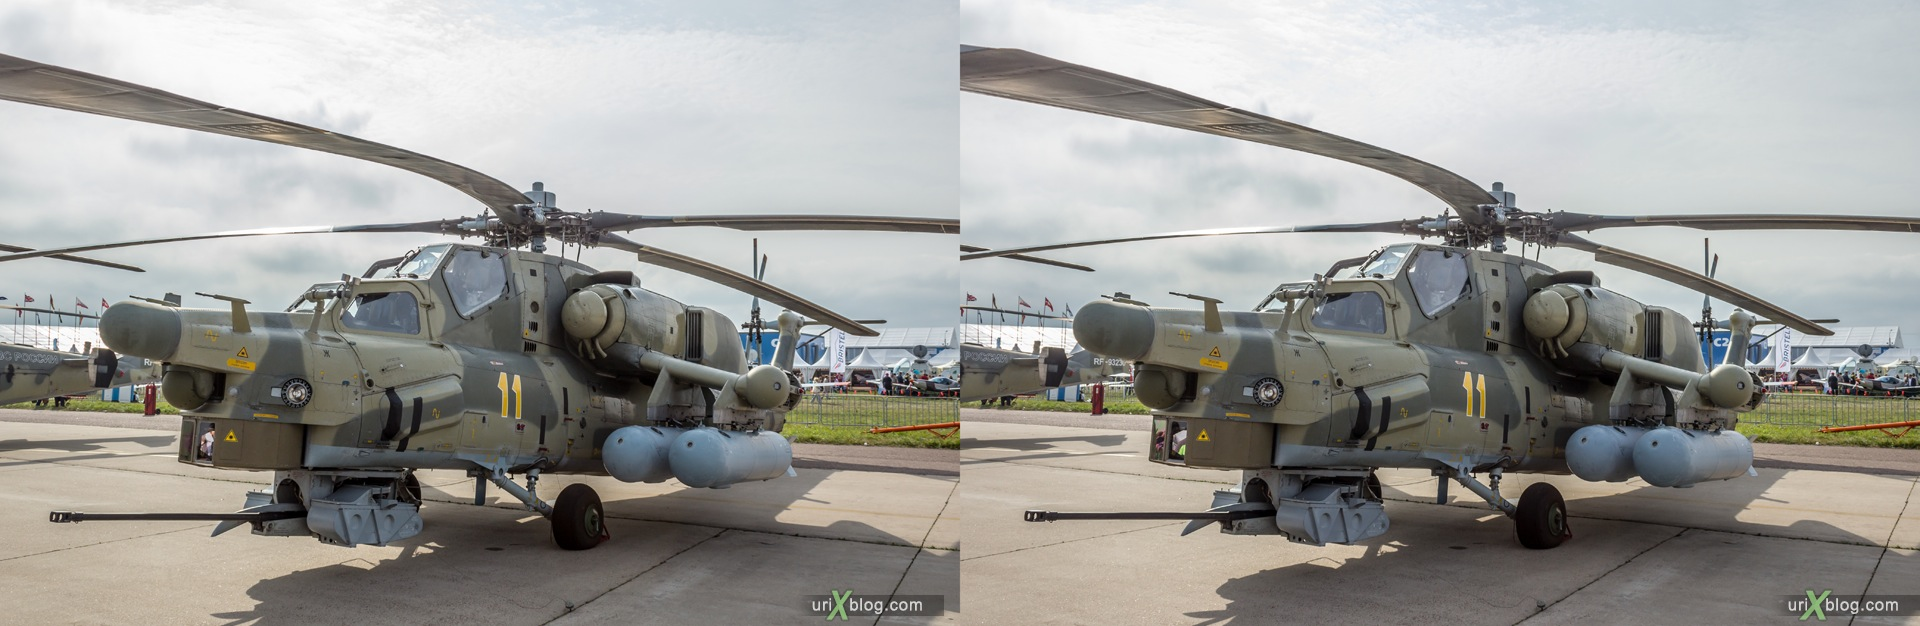 2013, MAKS, International Aviation and Space Salon, Russia, Ramenskoye airfield, Mi-28N, helicopter, 3D, stereo pair, cross-eyed, crossview, cross view stereo pair, stereoscopic